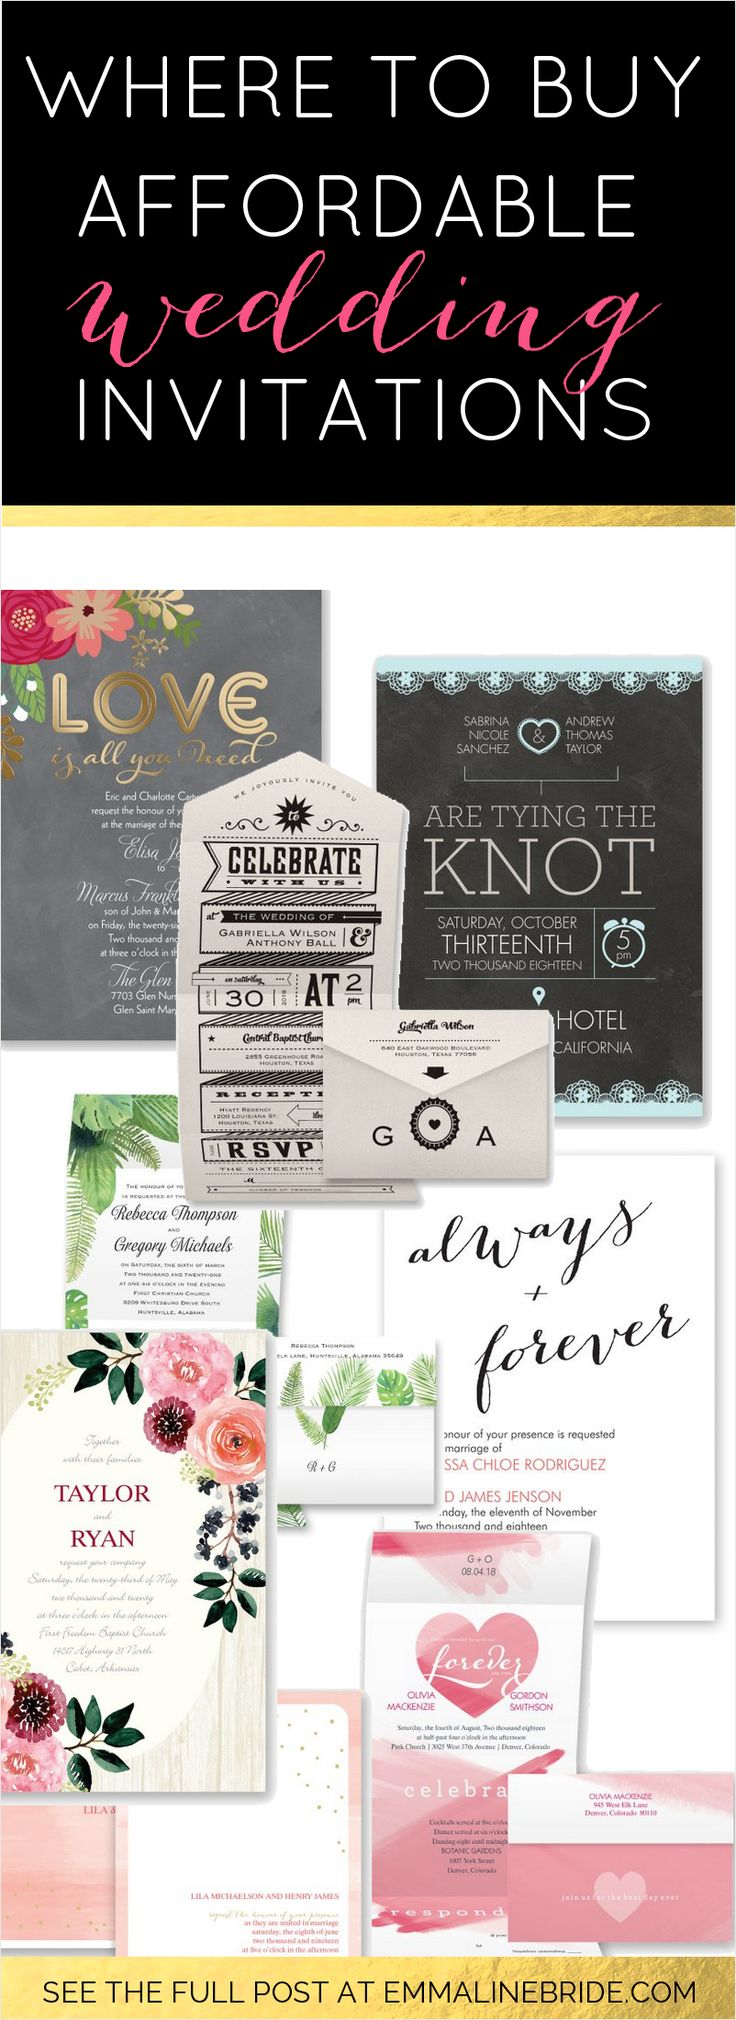 Where to Buy Affordable Wedding Invitations |  #affordableweddinginvitations #budget #cheap #David'sBridal #discount #inexpensive #inexpensiveinvitations #invitations #invitationsbydavid'sbridal #invites #promo #theme #wheretobuy |